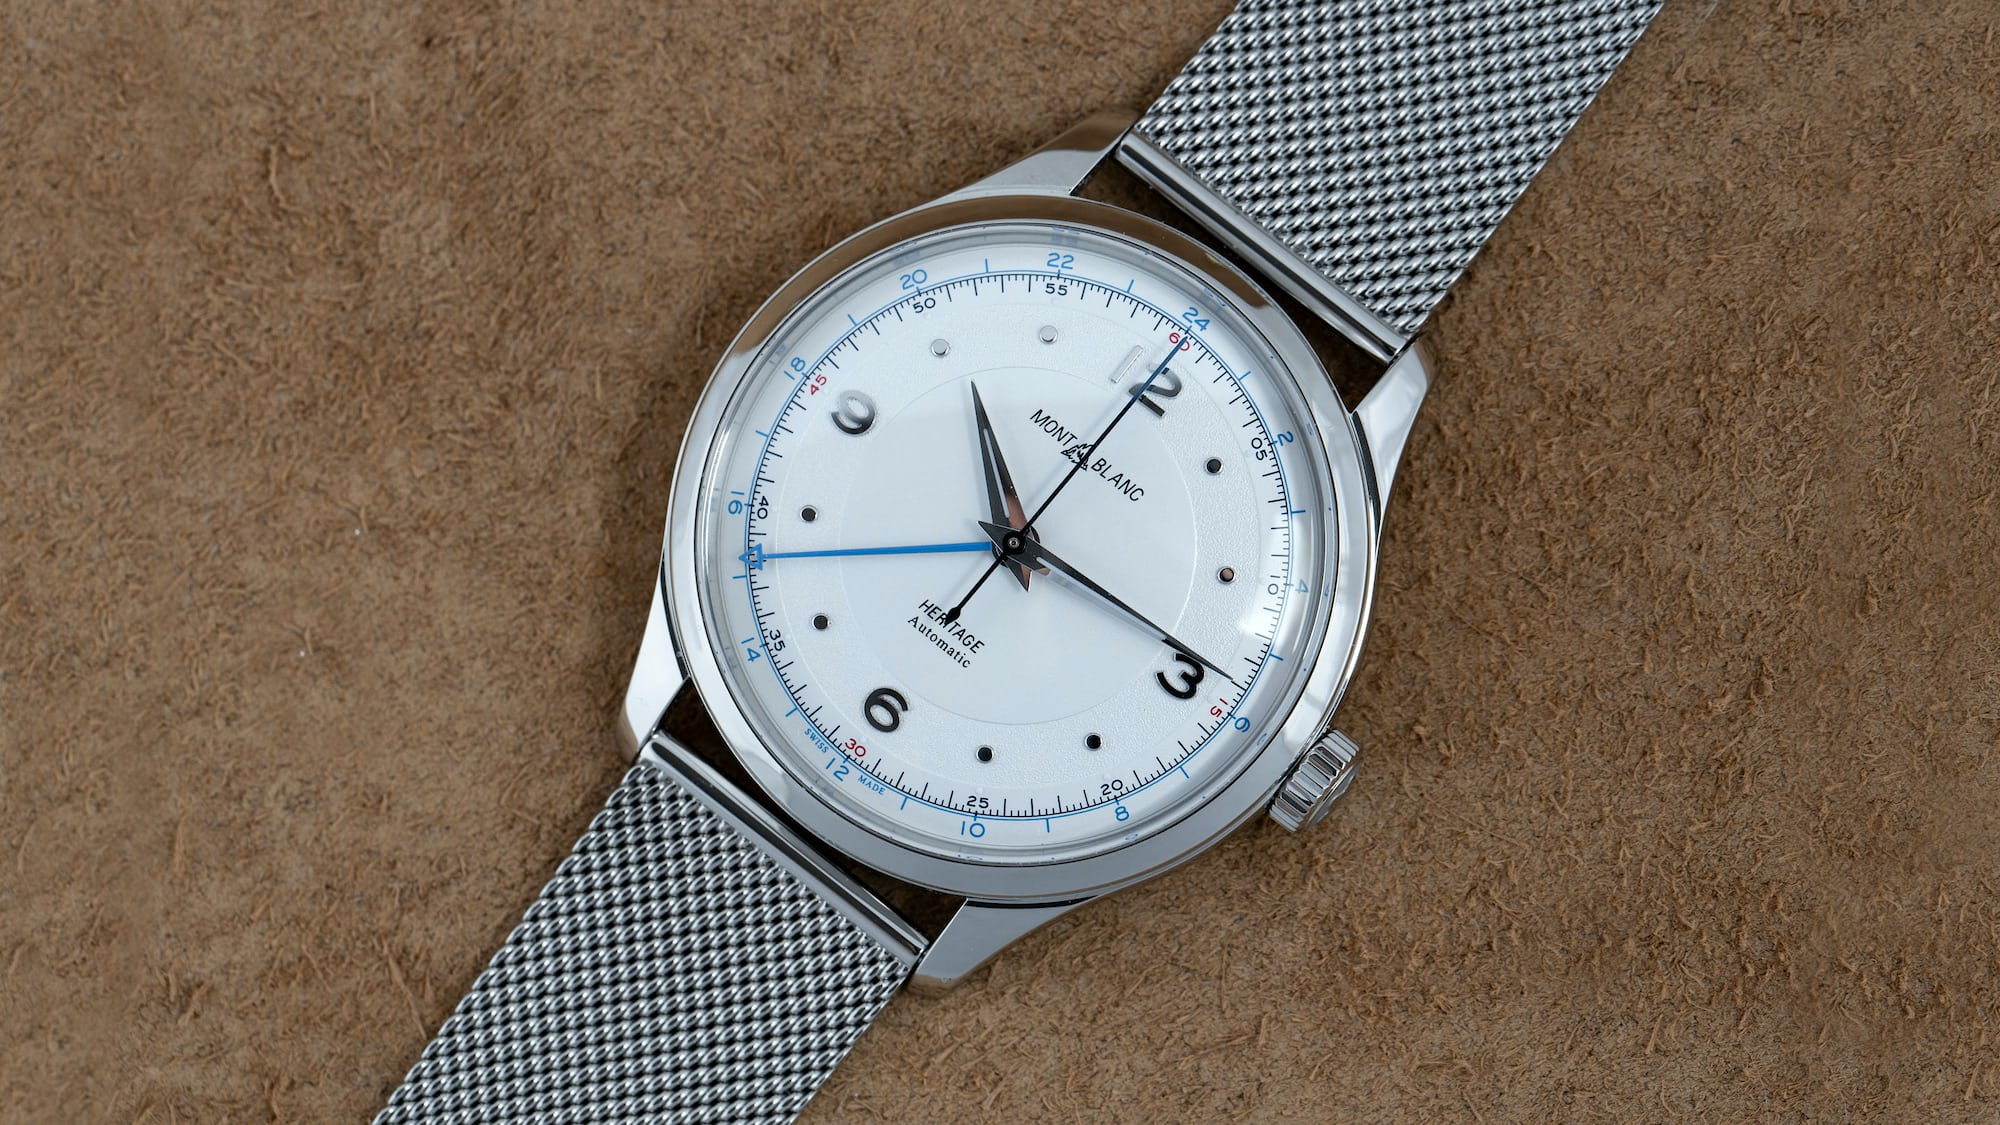 The Value Proposition: The Montblanc Heritage GMT